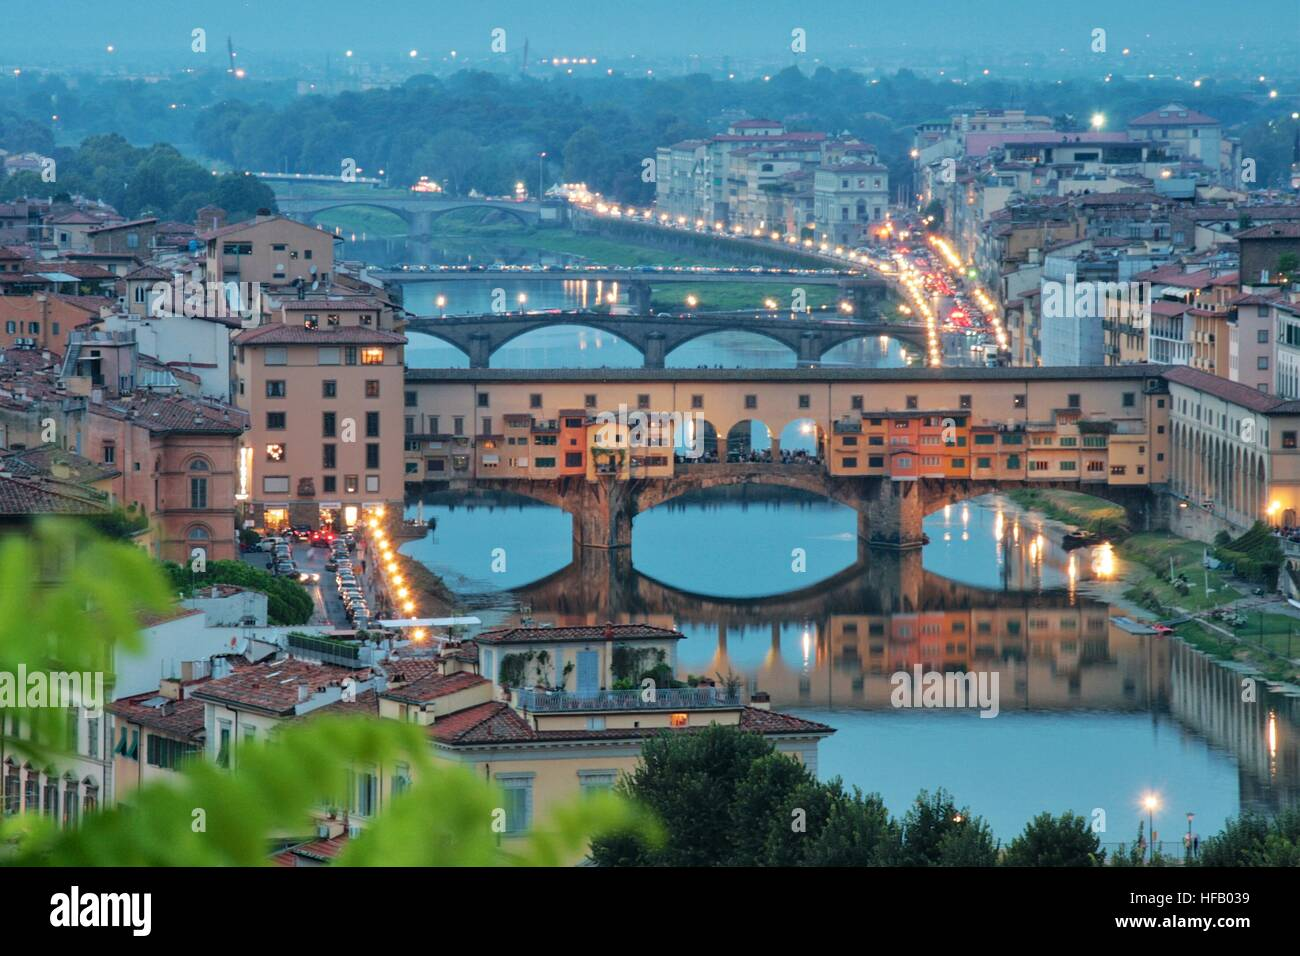 The Ponte Vecchio Bridge crossing the river Arno in Florence, Italy - Stock Image